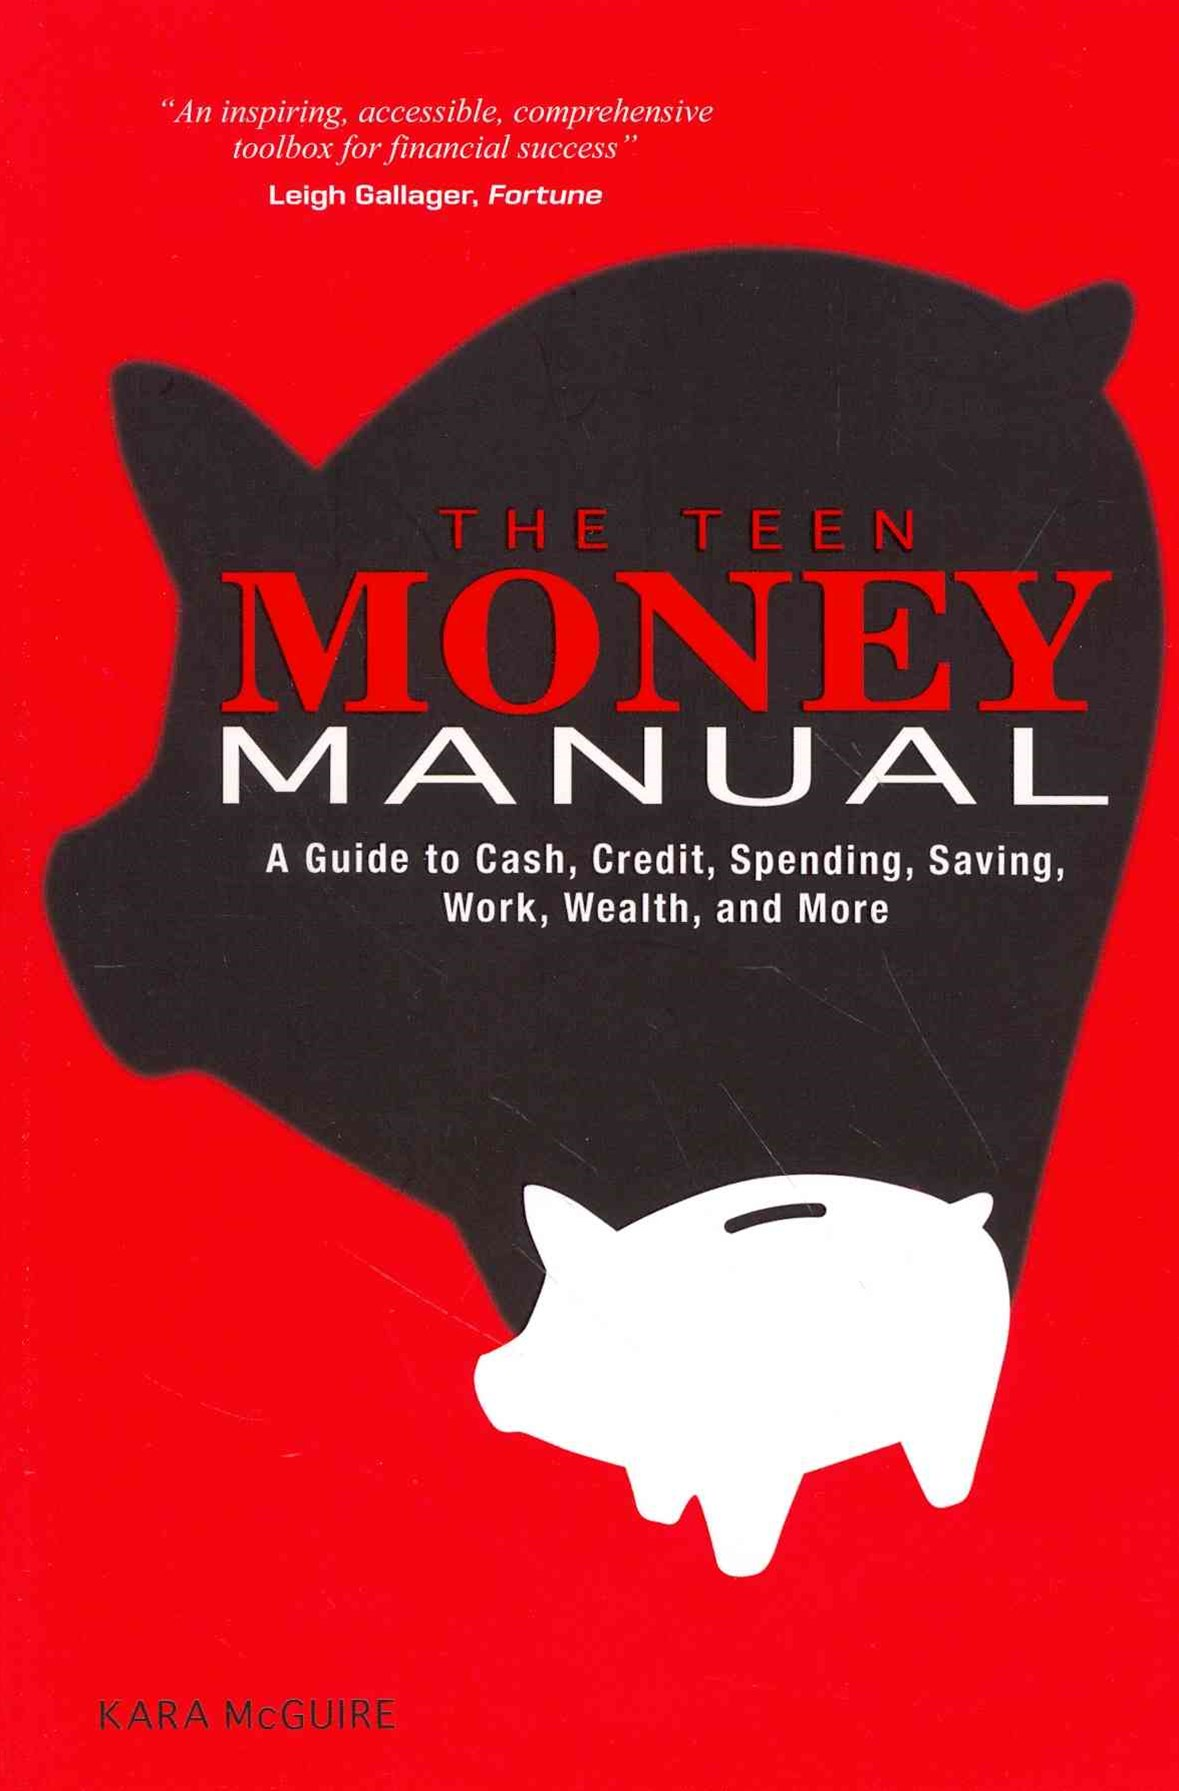 Teen Money Manual: A Guide to Cash, Credit, Spending, Saving, Work, Wealth, and More